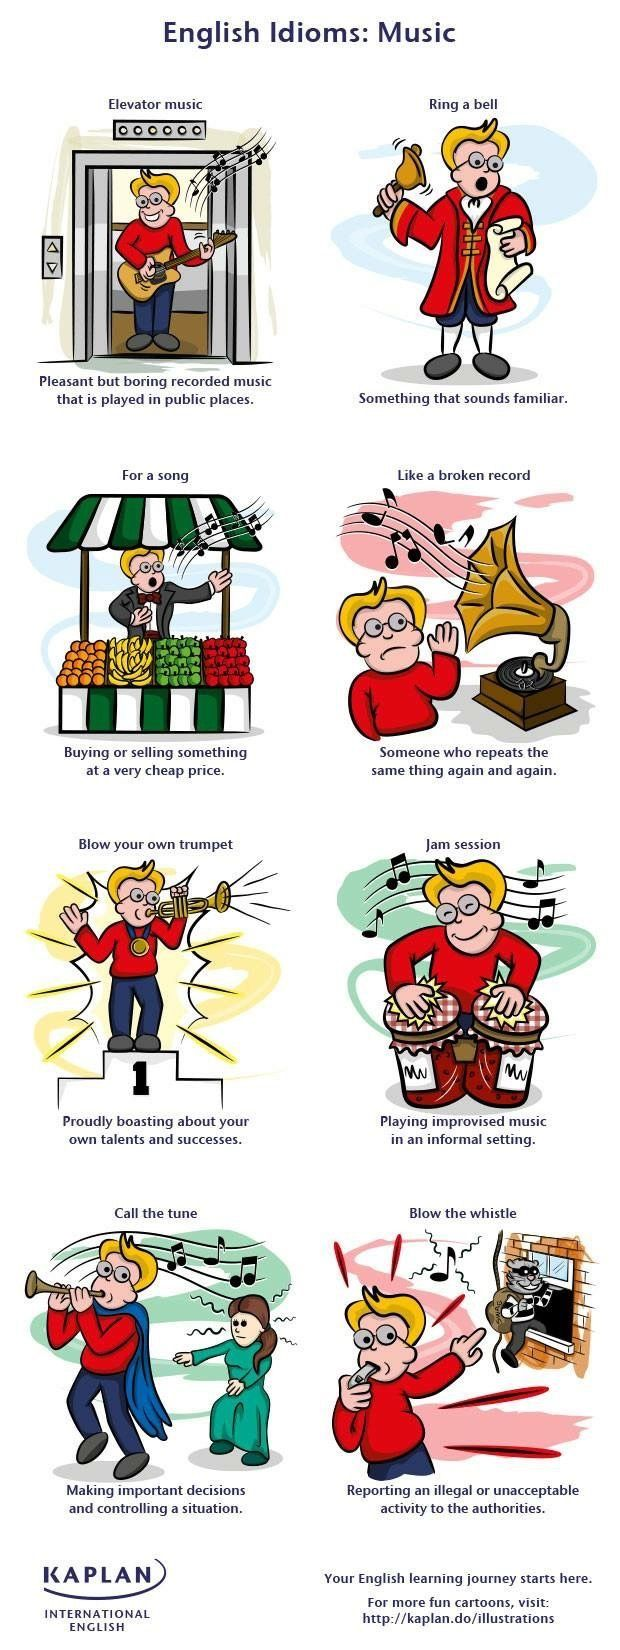 52 Best Idioms And Figurative Language Images On Pinterest English